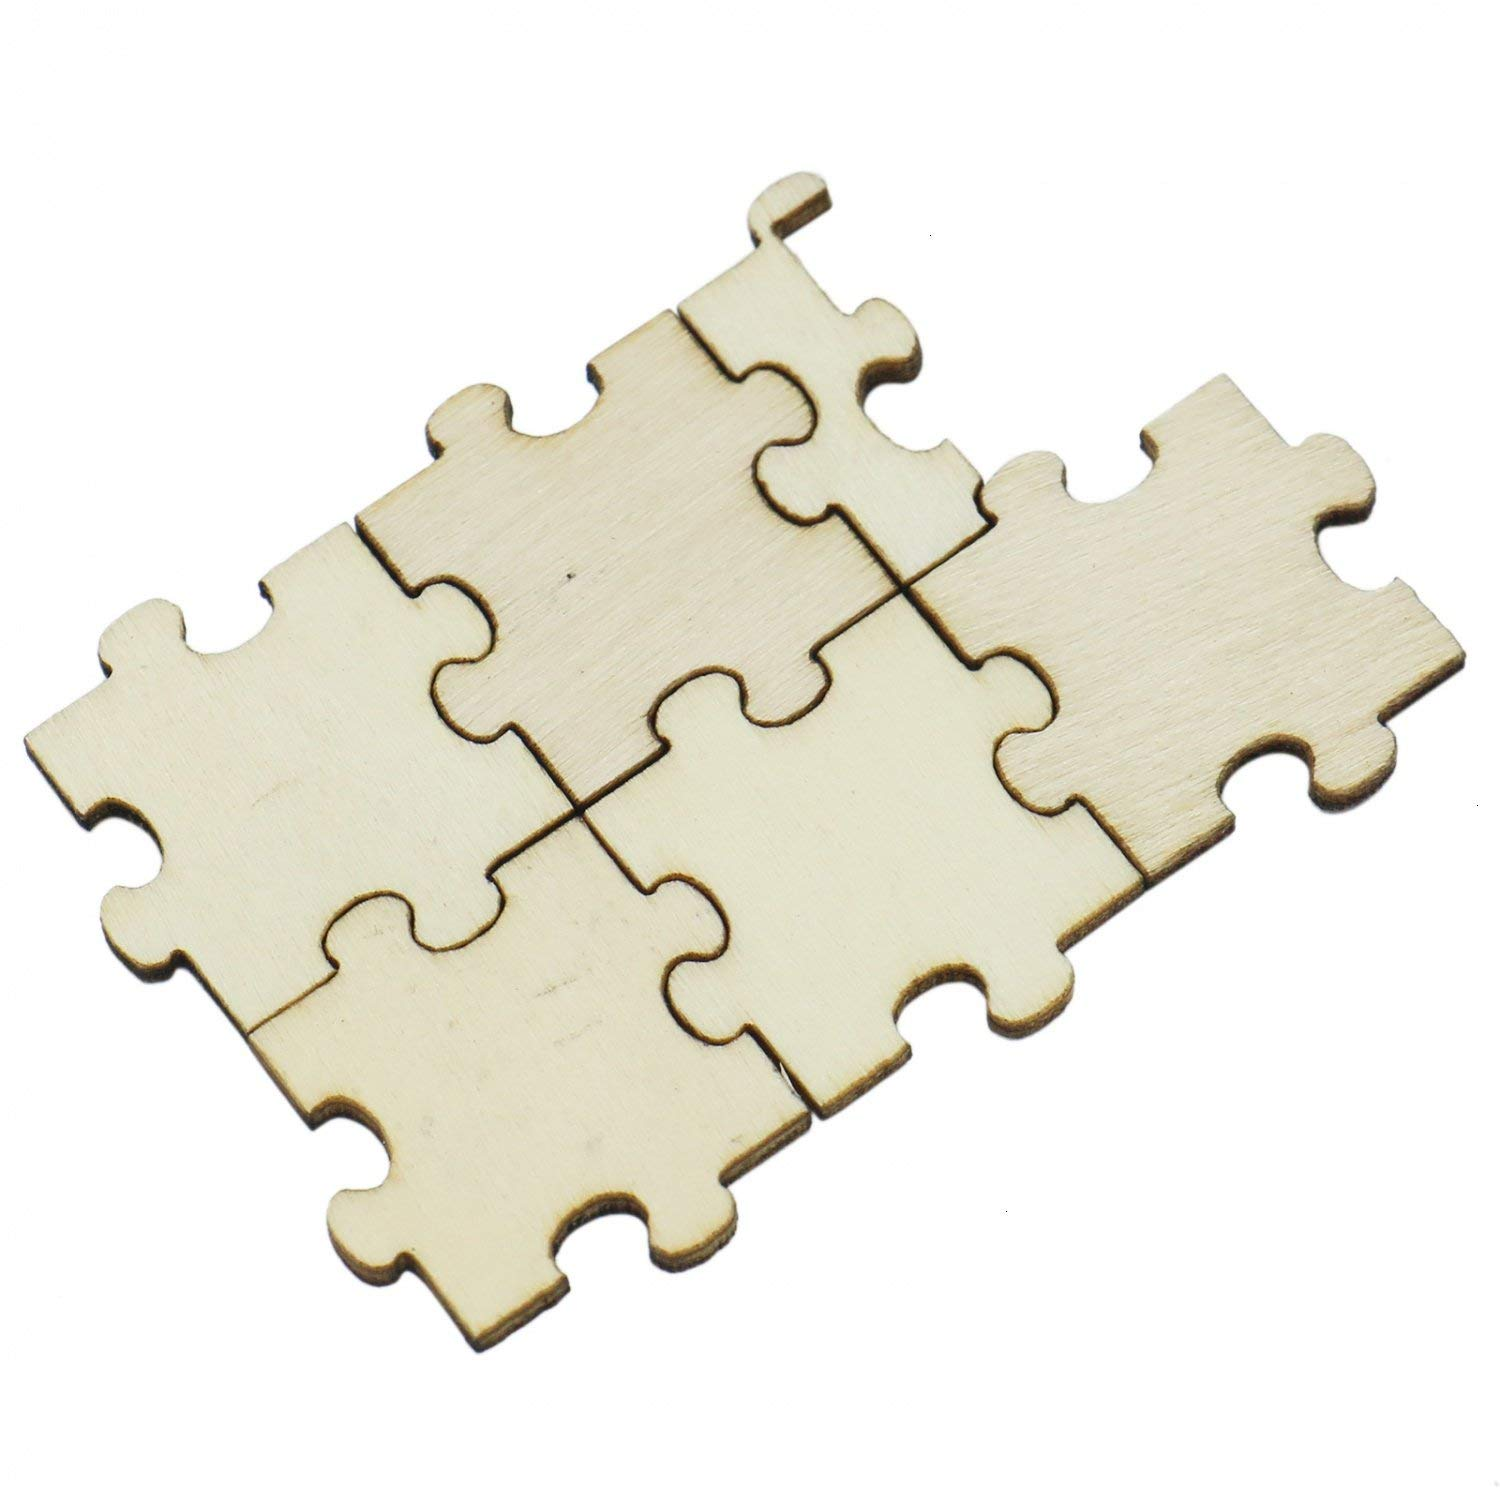 Puzzle pieces for party guest sign in.